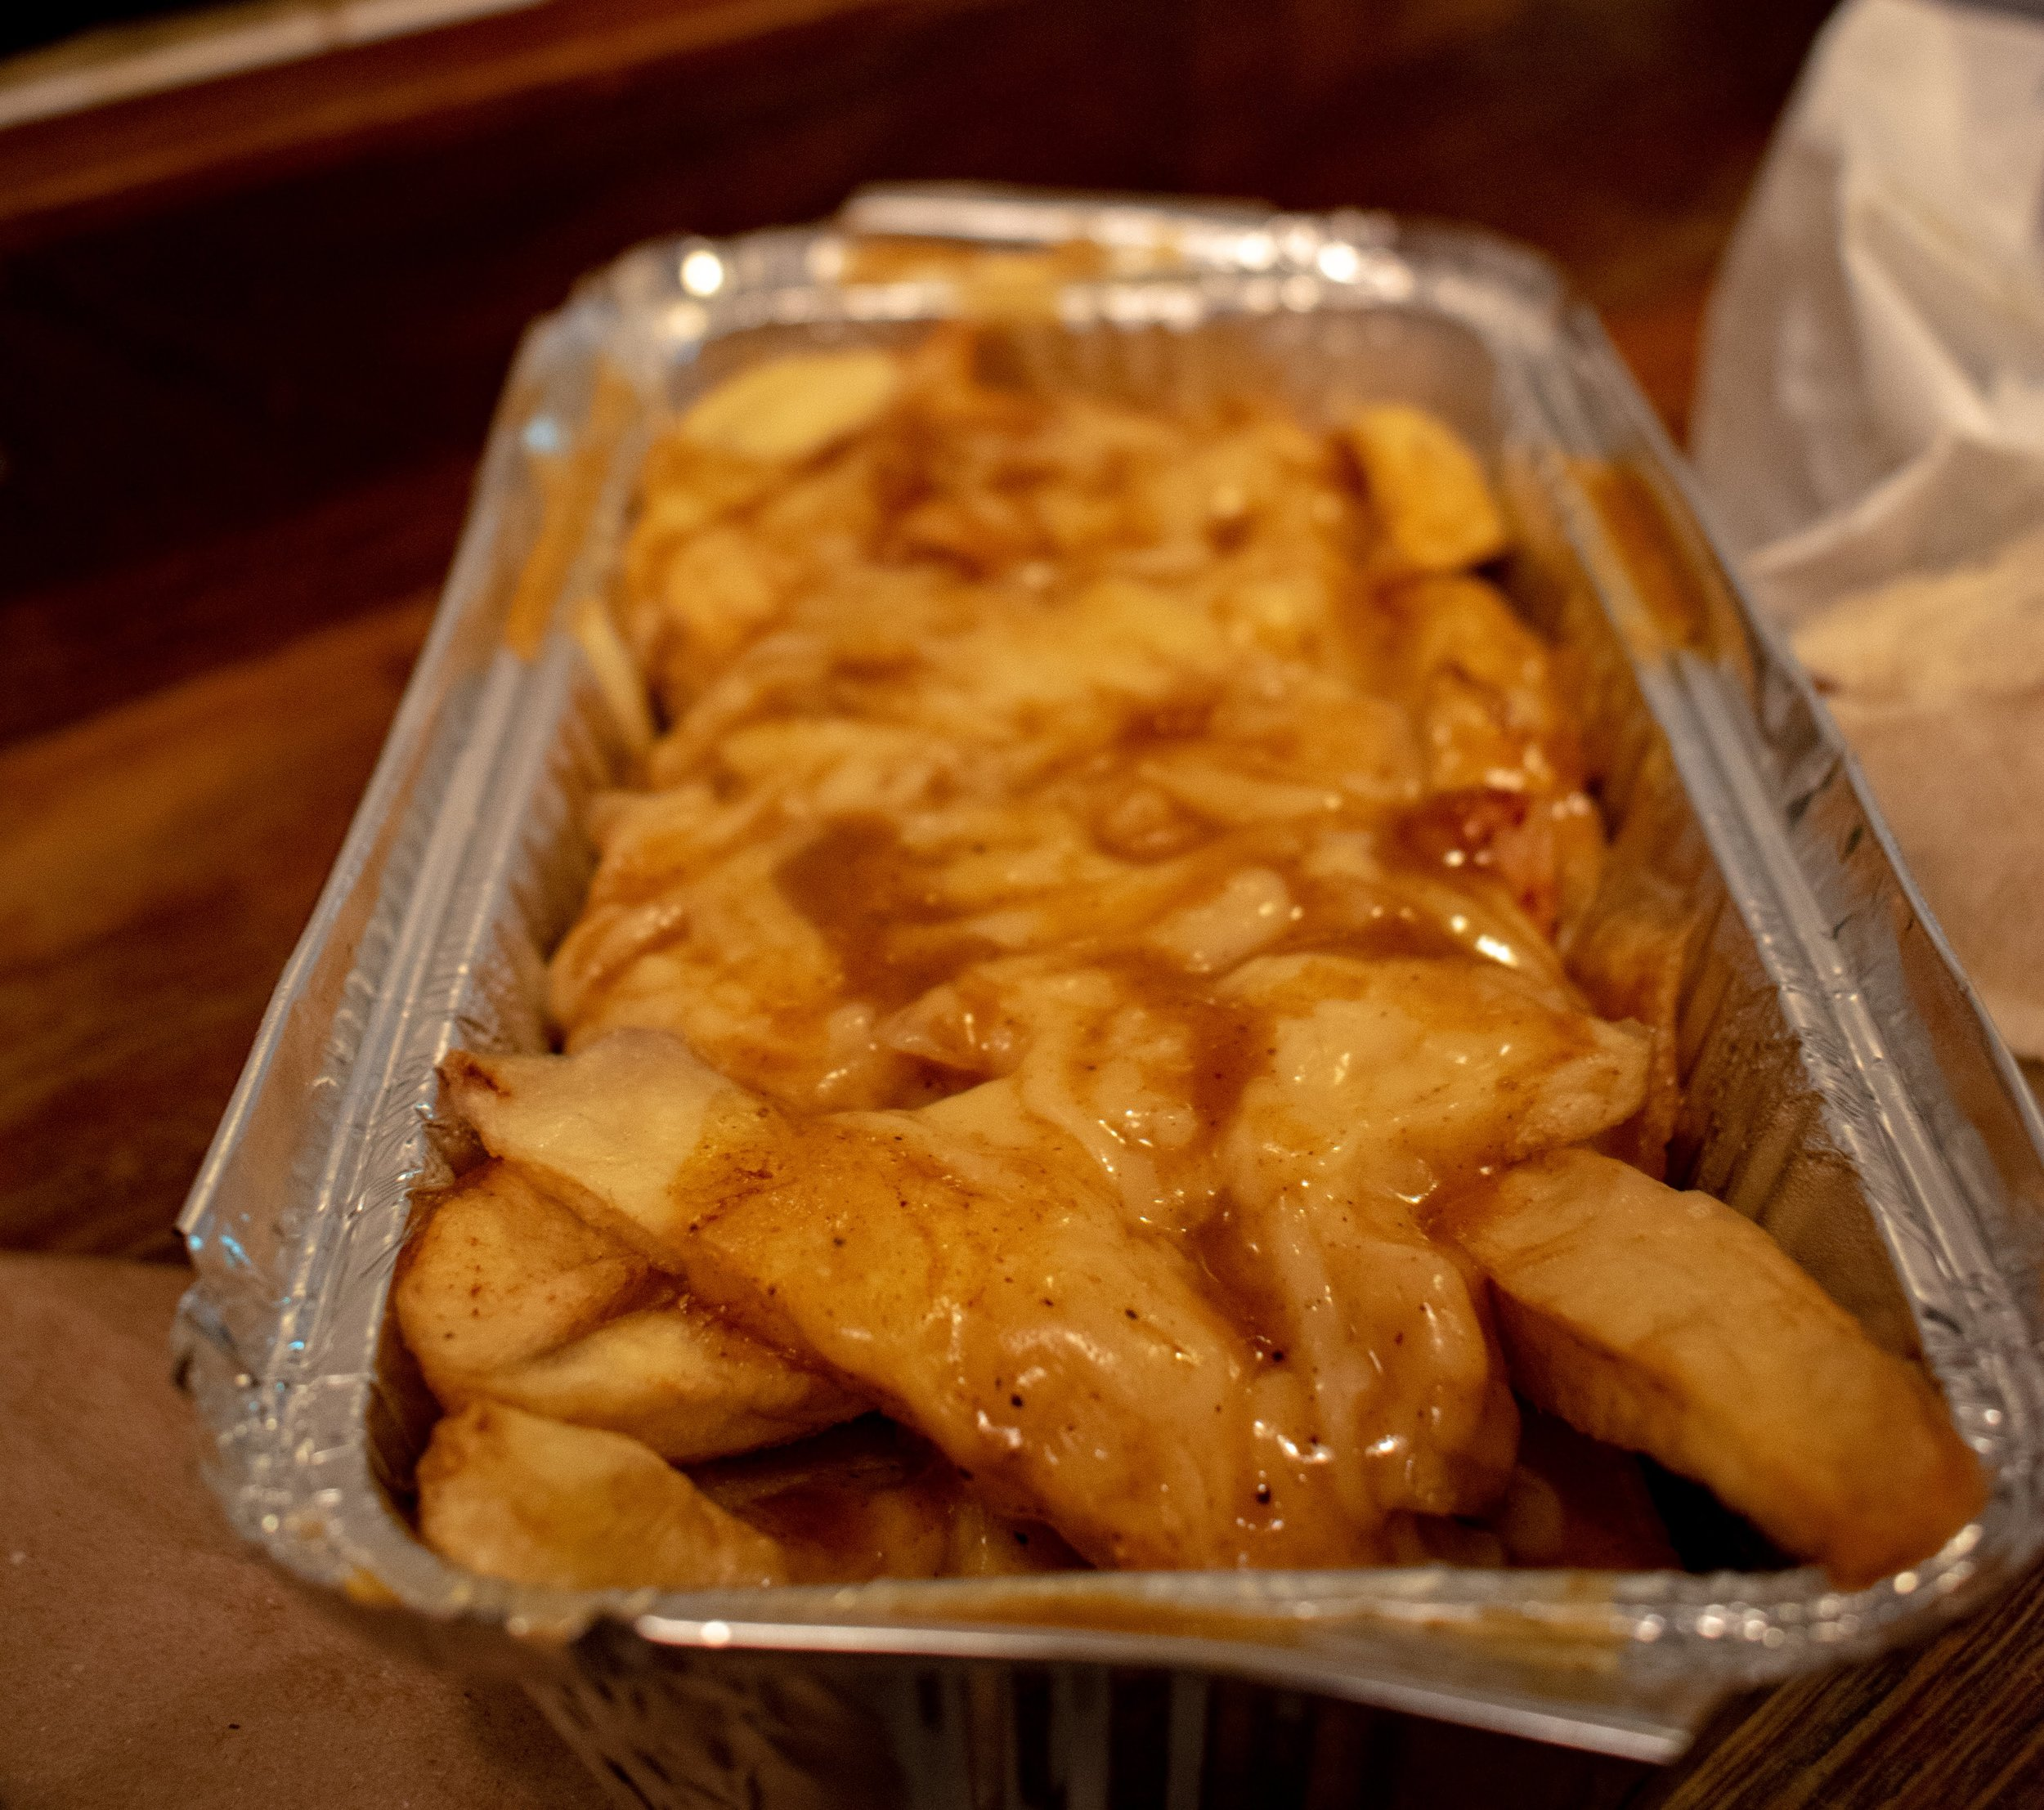 uprooted-traveler-dublin-curry-fries-mcguinness-traditional-takeaway-vegan-guide.jpg